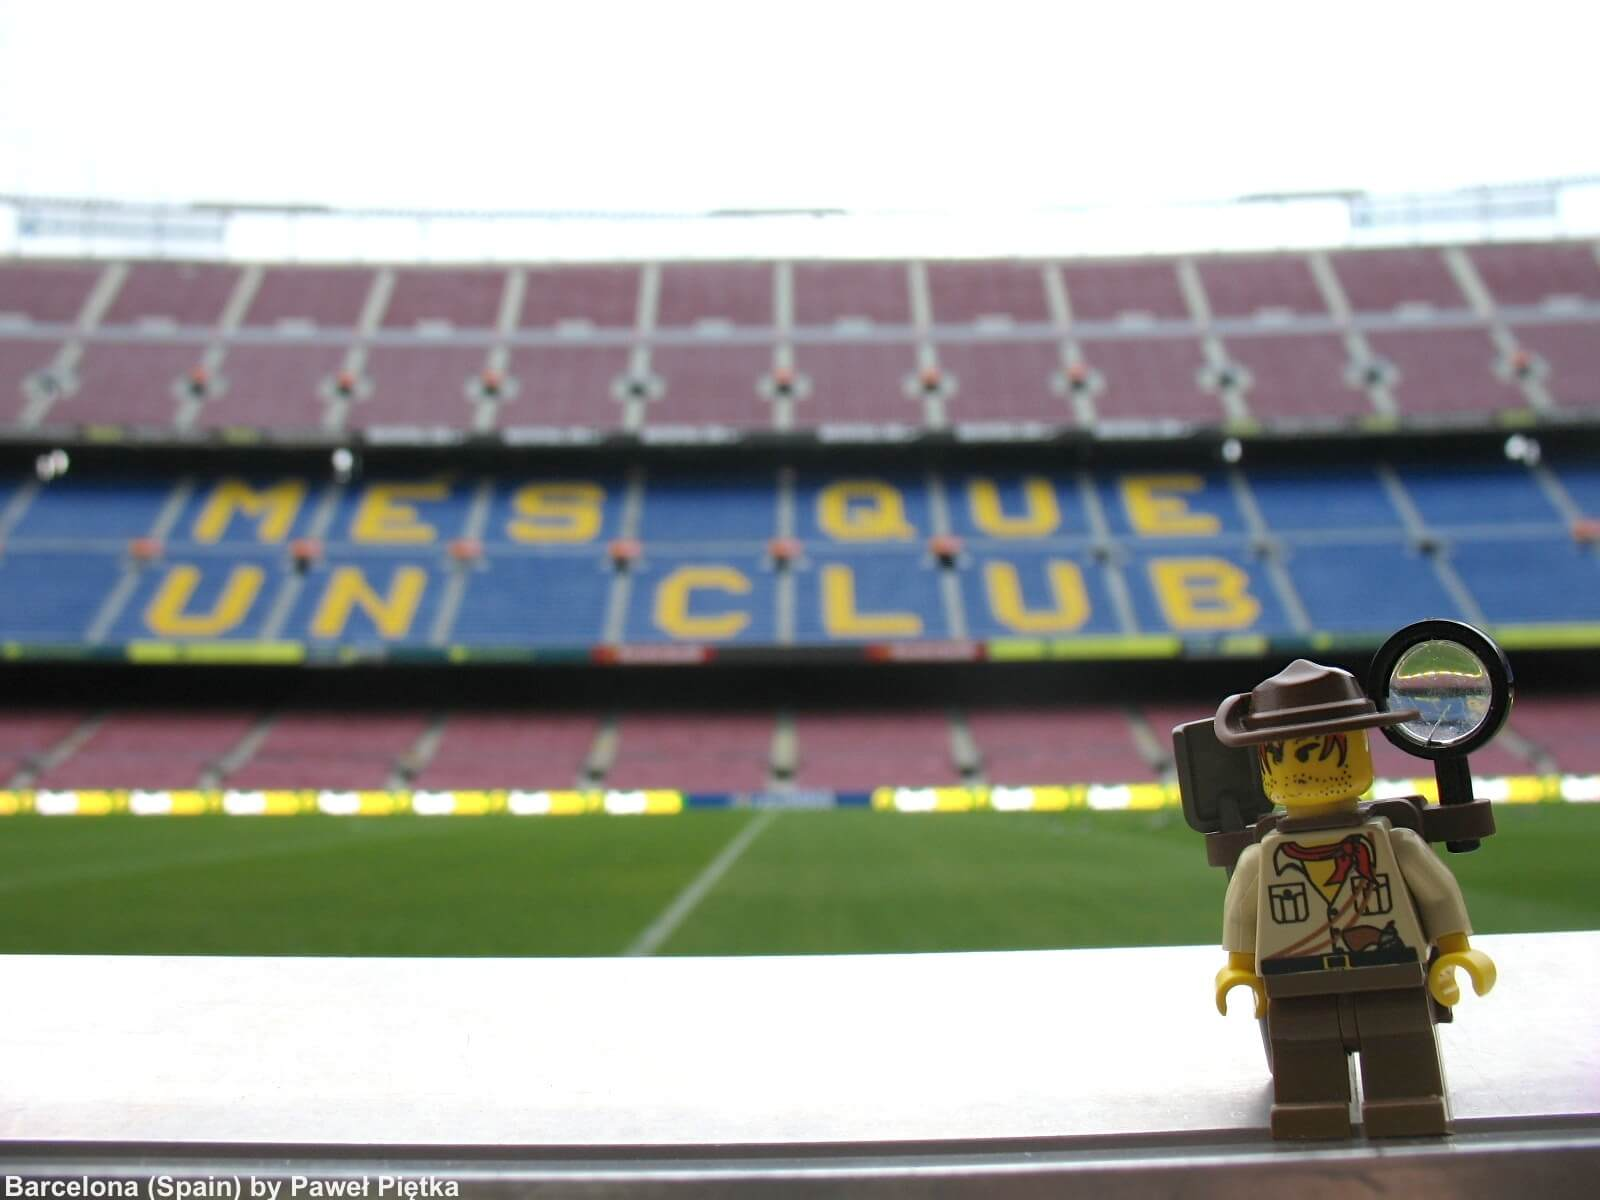 Barcelona (Spain) - Camp Nou 1